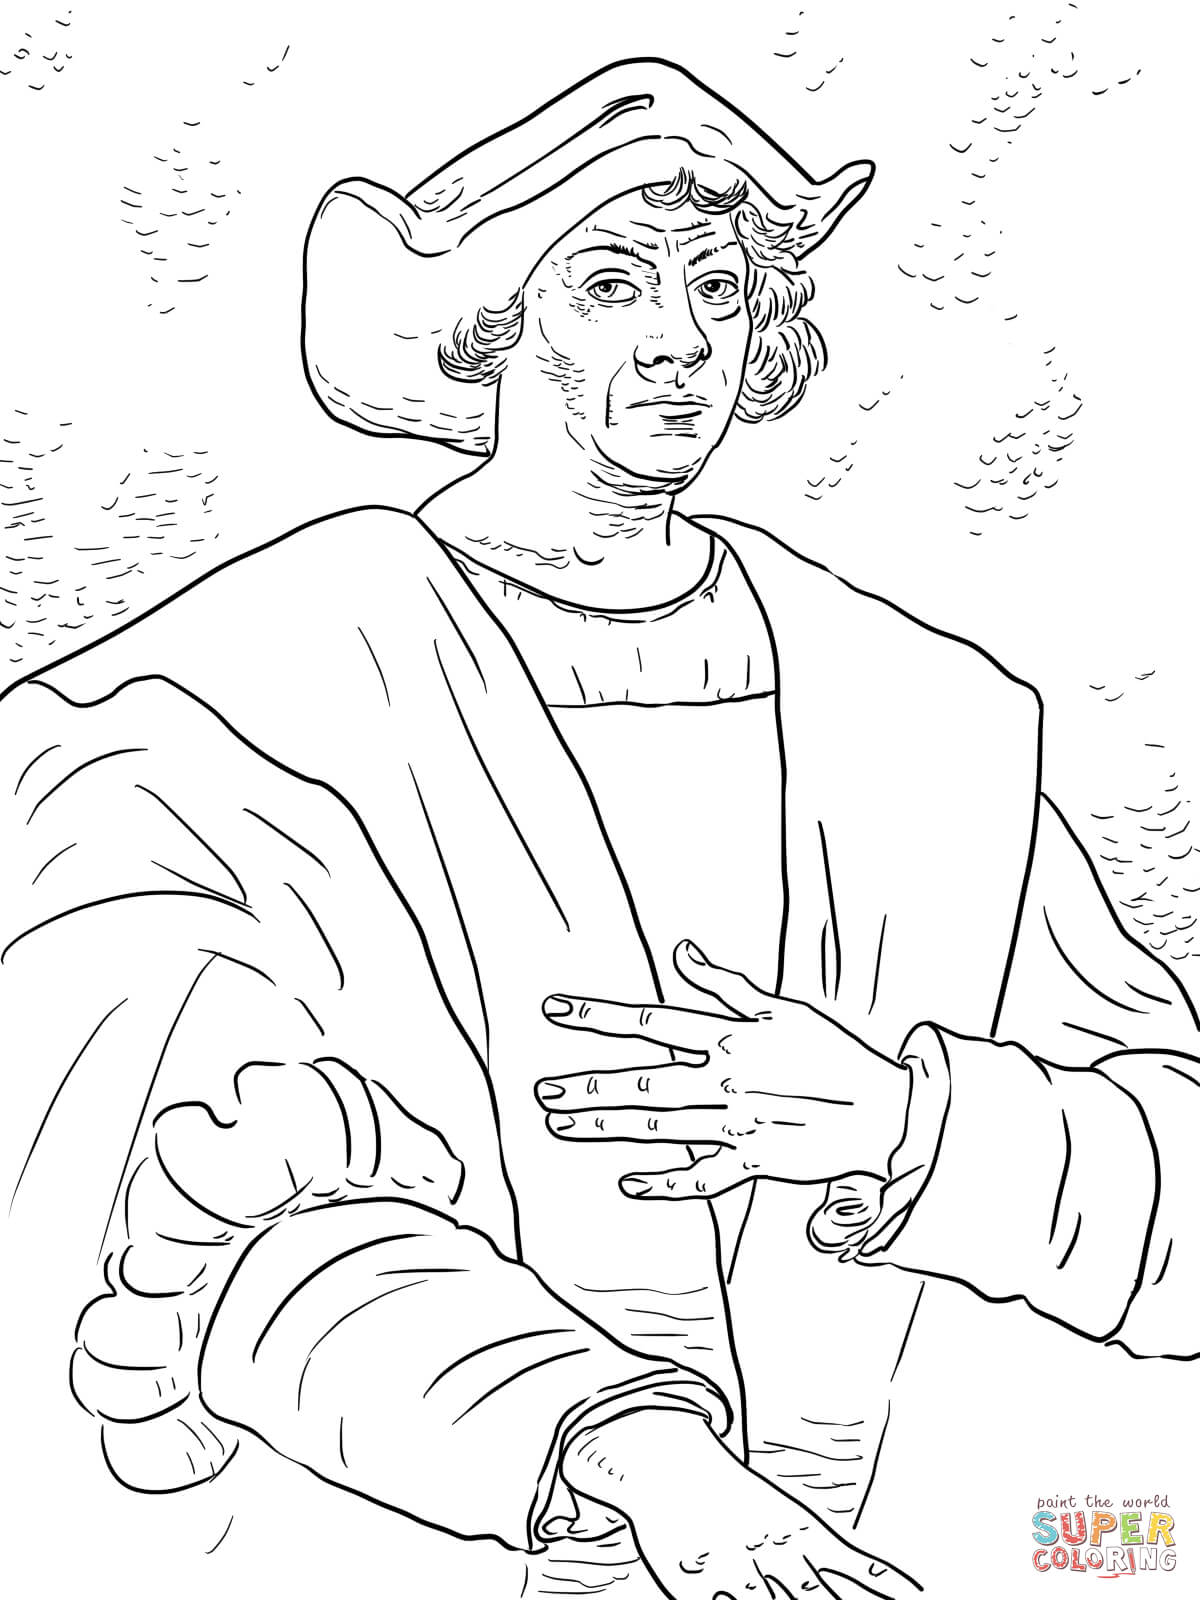 Columbus Day Drawing At Getdrawings